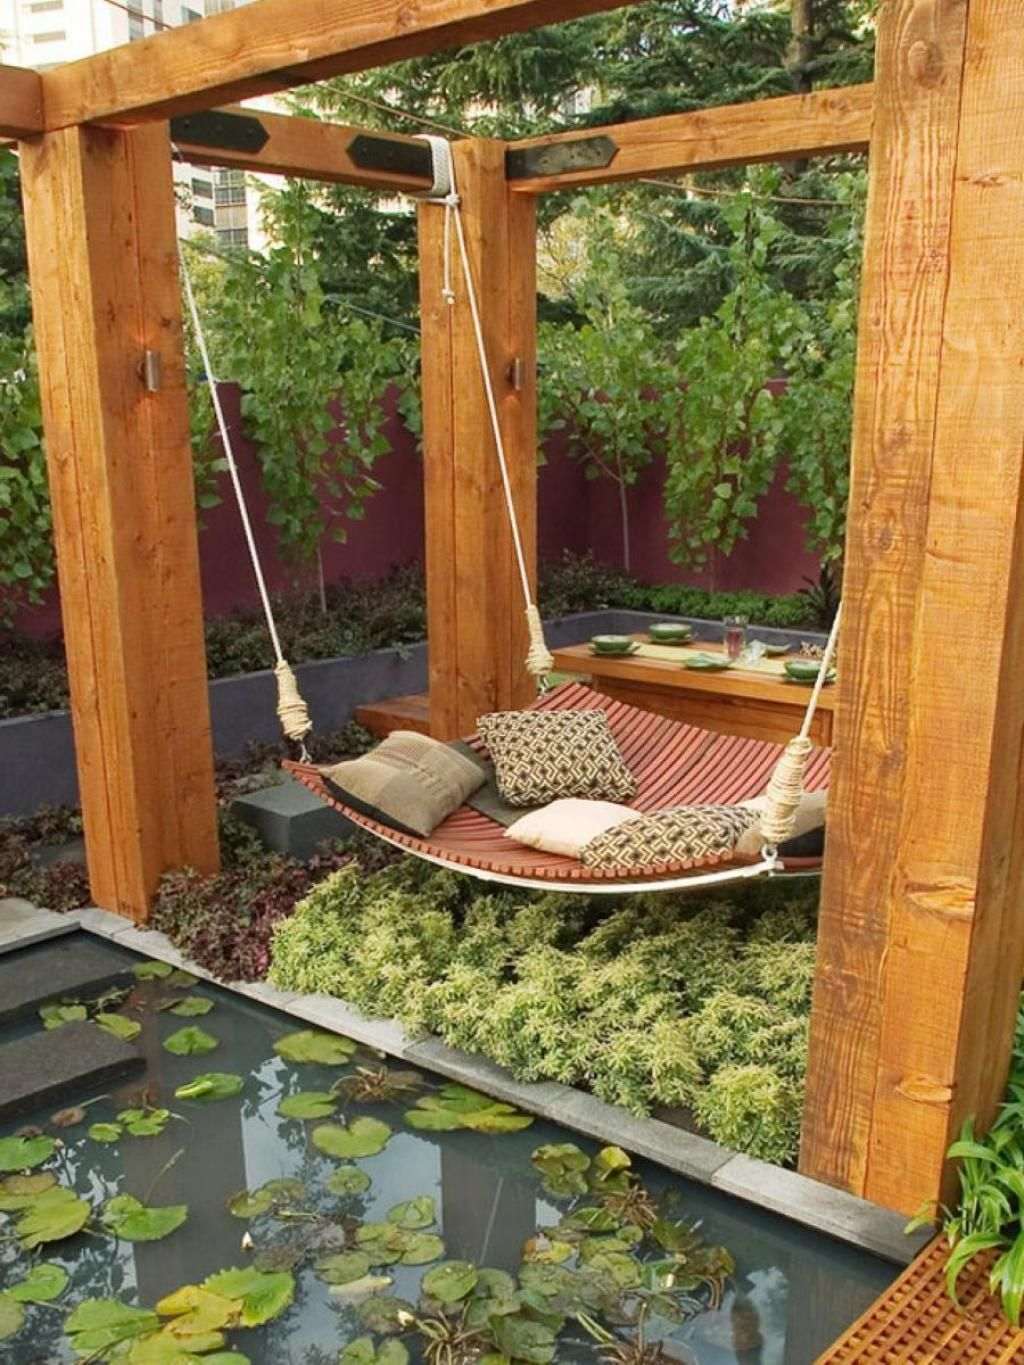 Sitzsack Balkon Enchanting Outdoor Living Space Design For Small Space